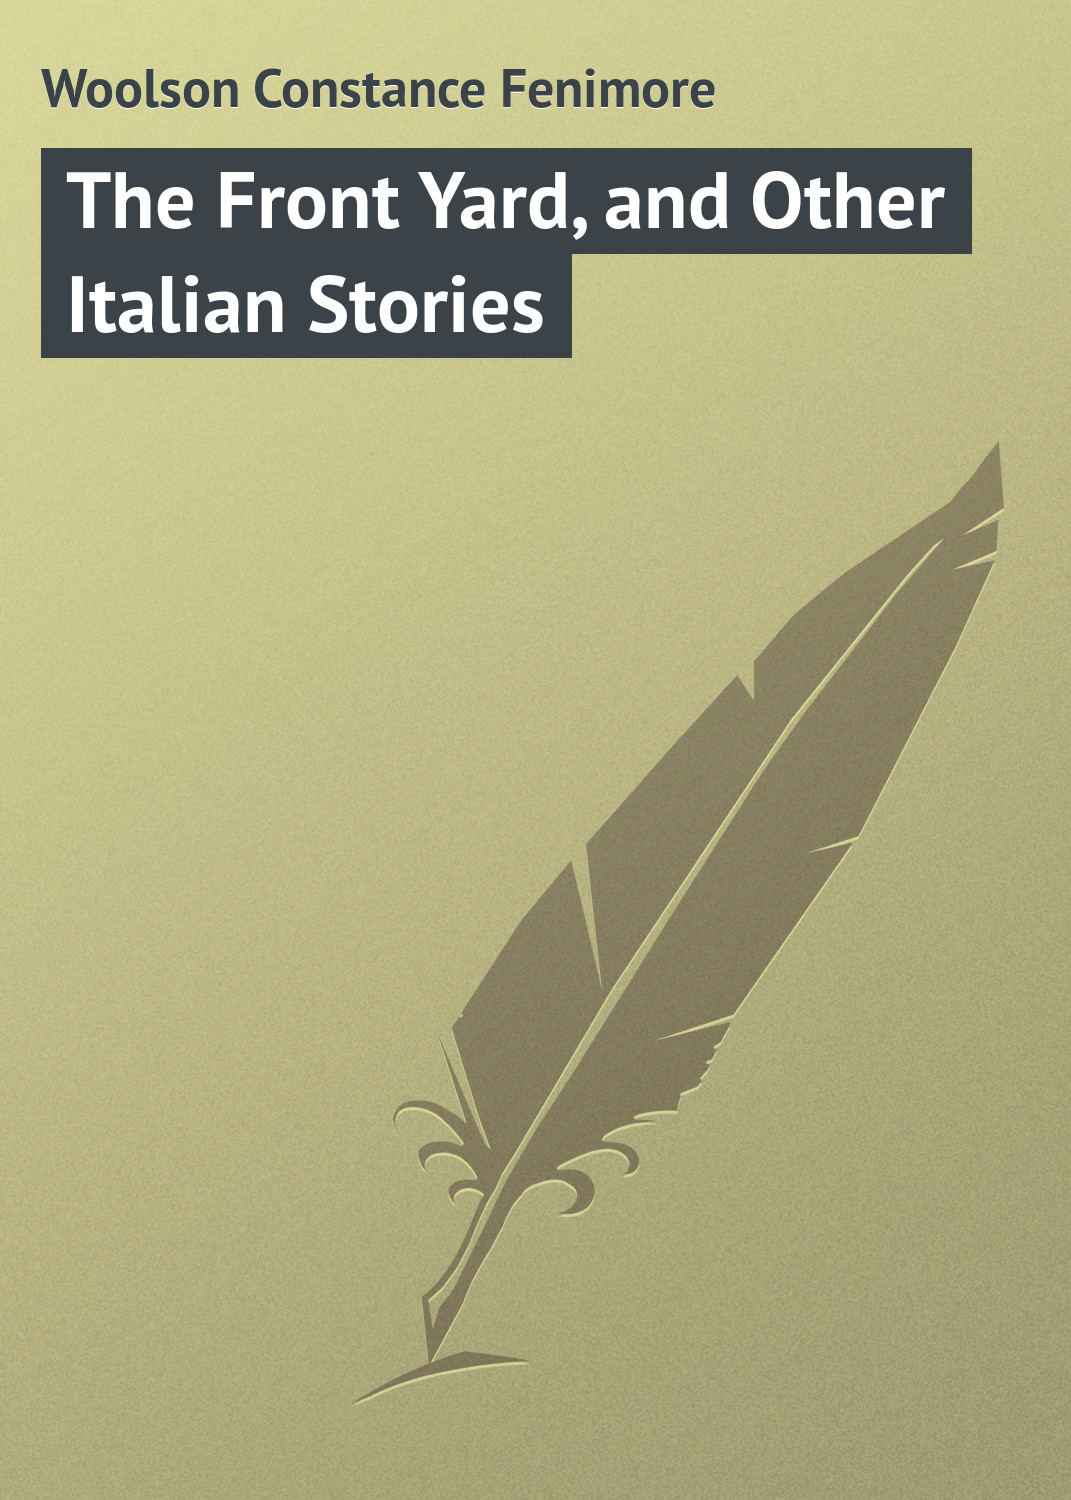 Woolson Constance Fenimore The Front Yard, and Other Italian Stories